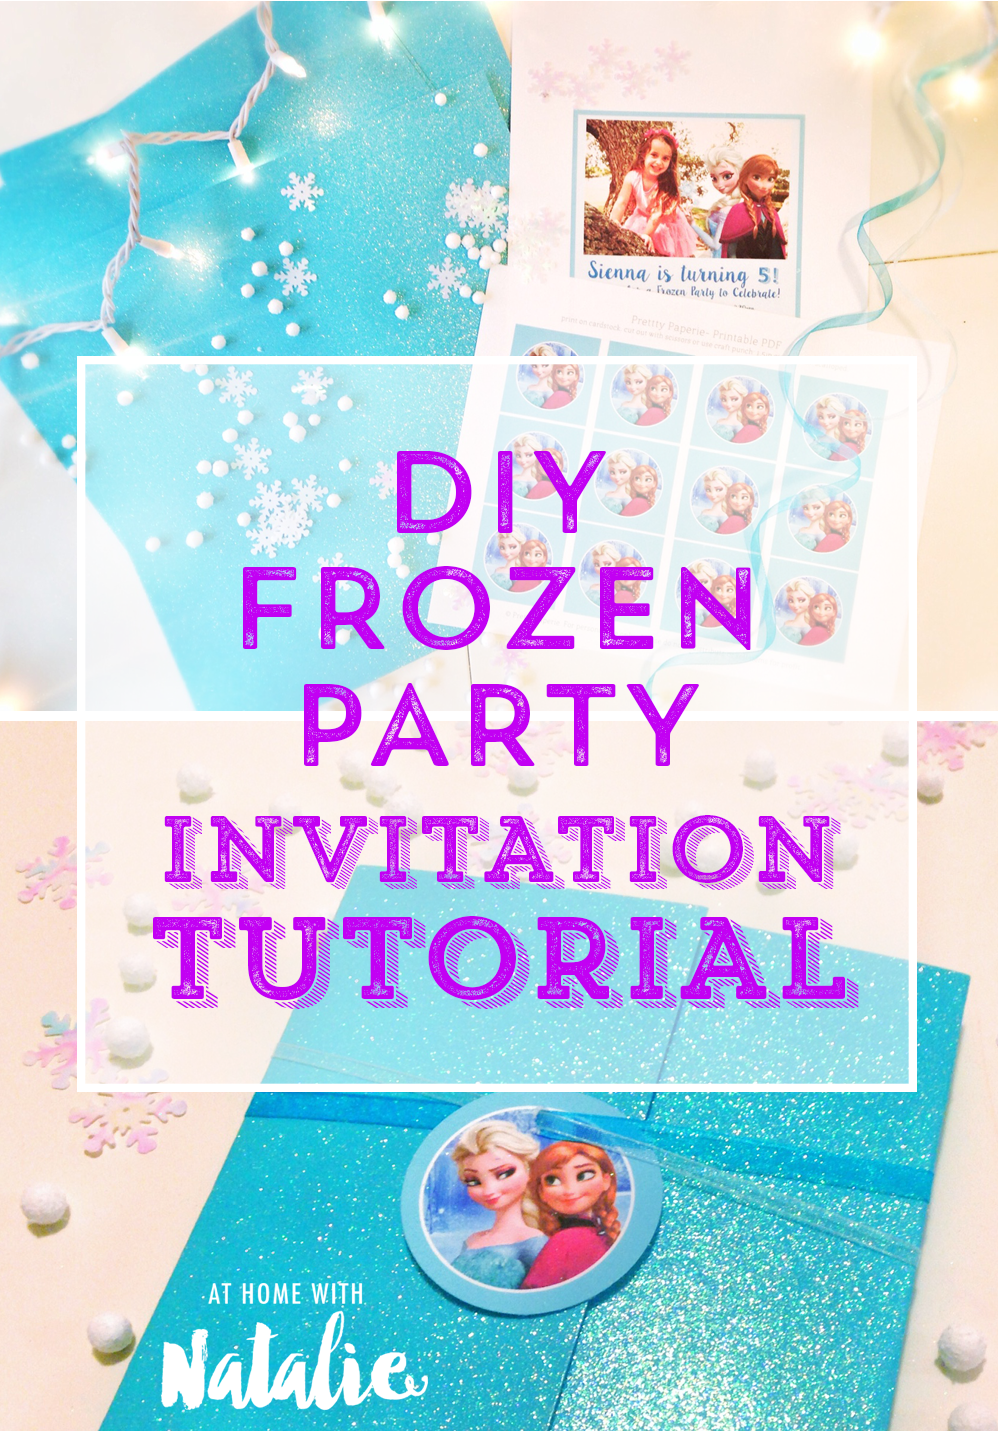 Diy frozen party invitation tutorial free printable at home with i thinkkkkk they are coming to her partybut shhh its a surprise im giddy filmwisefo